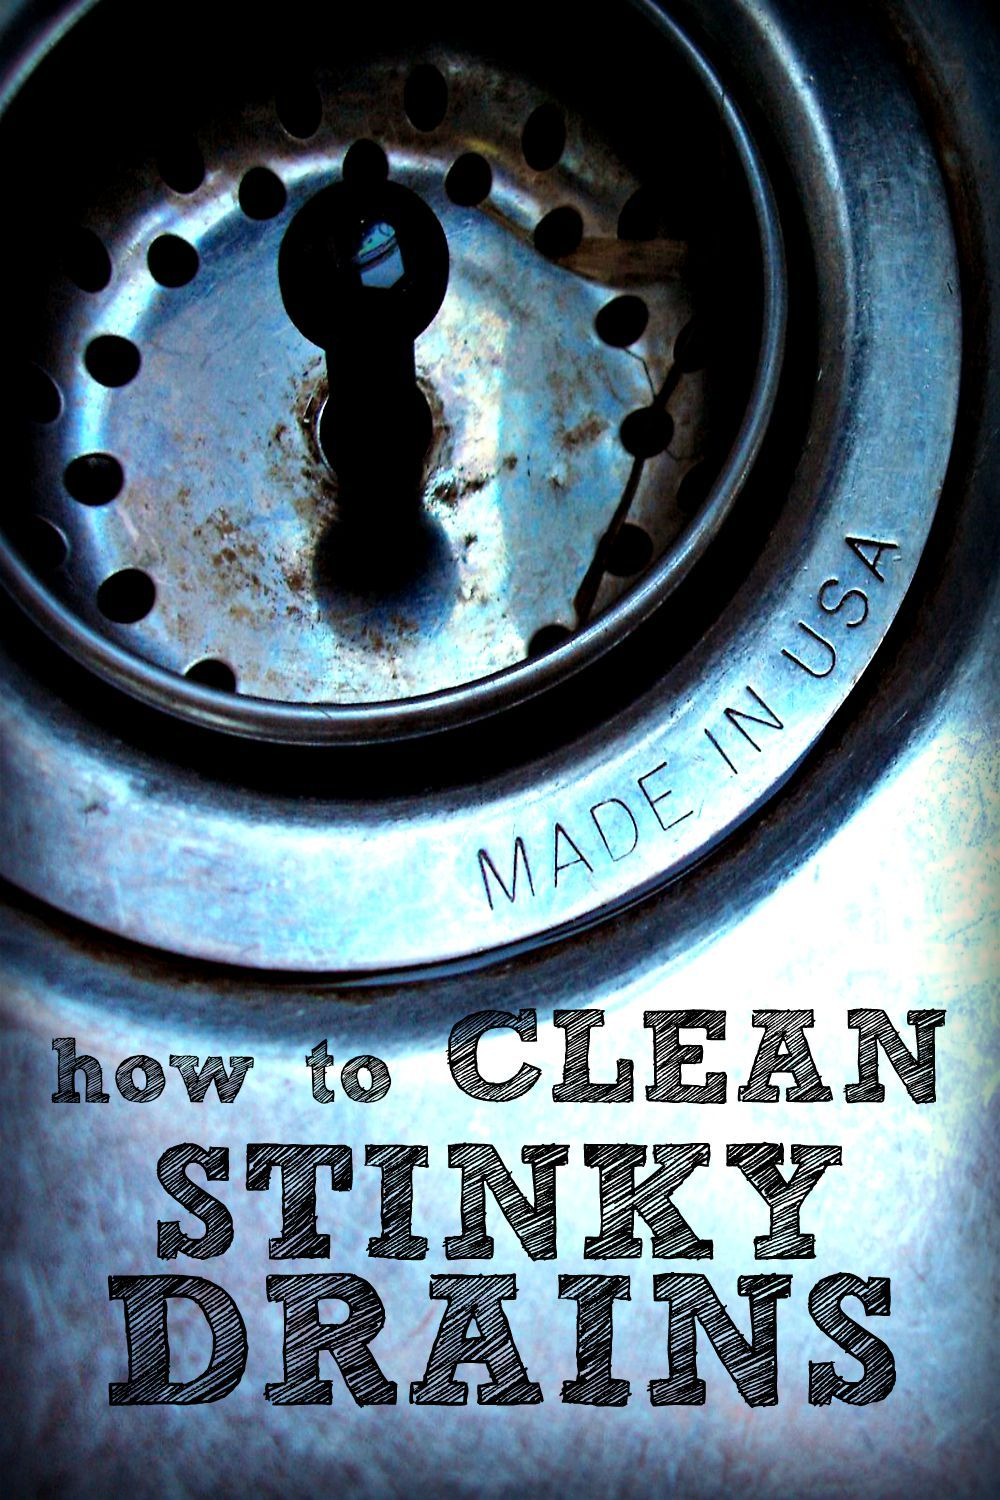 DIY Sink Drain Cleaner Sink drain cleaner, Drain cleaner